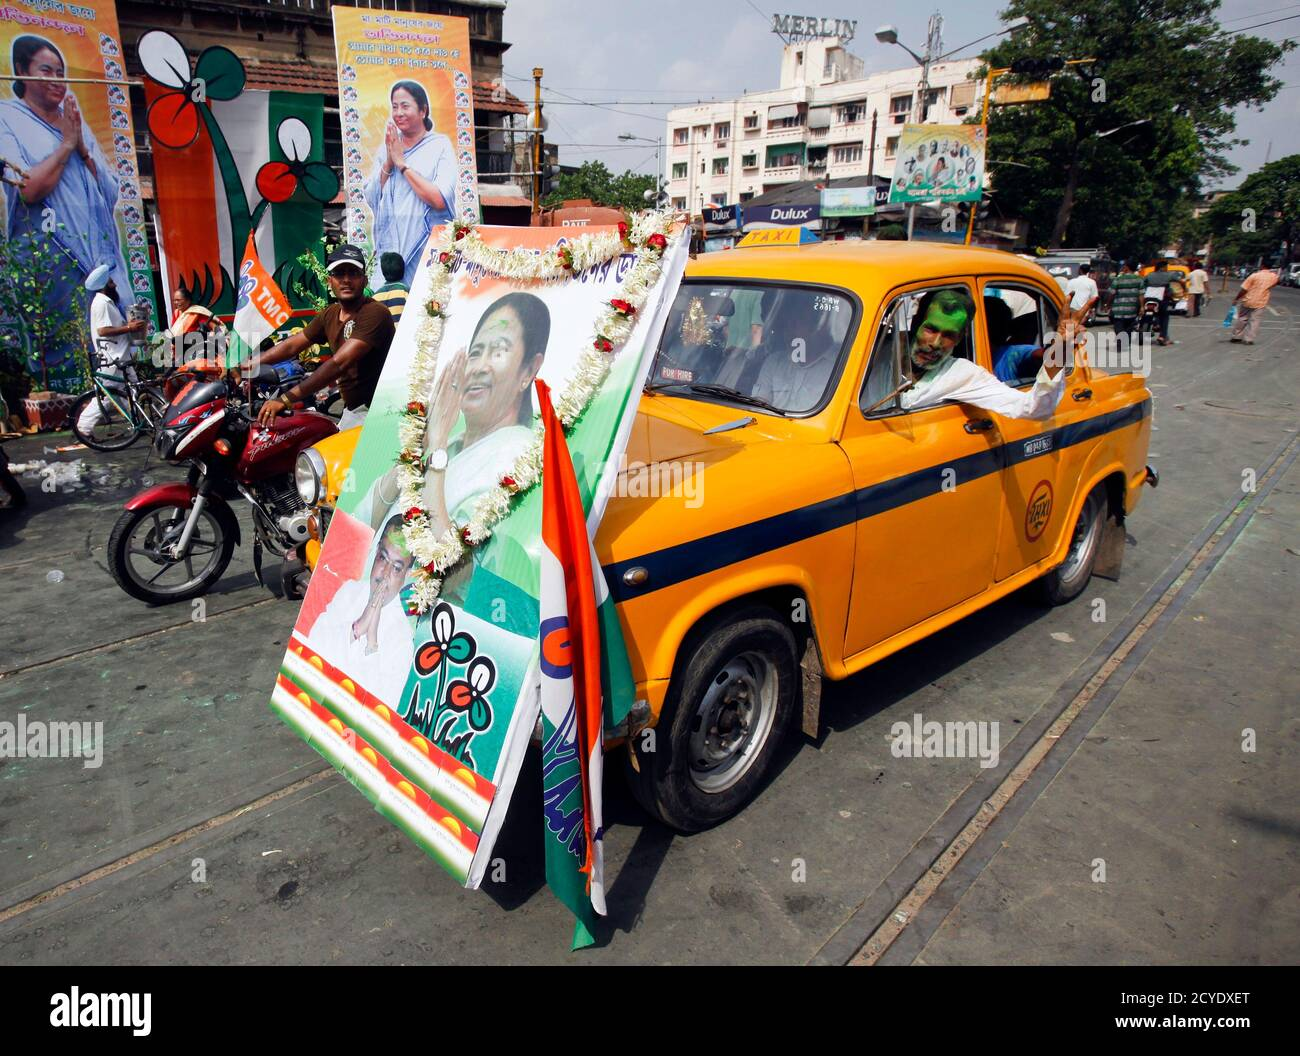 A man drives an iconic yellow ambassador taxi with a portrait of Trinamool Congress party leader Mamata Banerjee attached to the front in a street in Kolkata, May 13, 2011. India's ruling Congress-led coalition overturned three decades of communist rule in the swing state of West Bengal on Friday, one of several regional poll victories that could give some respite for a beleaguered Prime Minister Manmohan Singh. The Congress alliance led by maverick populist Mamata Banerjee was leading in 215 seats out of the 294 at stake in the West Bengal state assembly, with the communists ahead in 72 seats Stock Photo